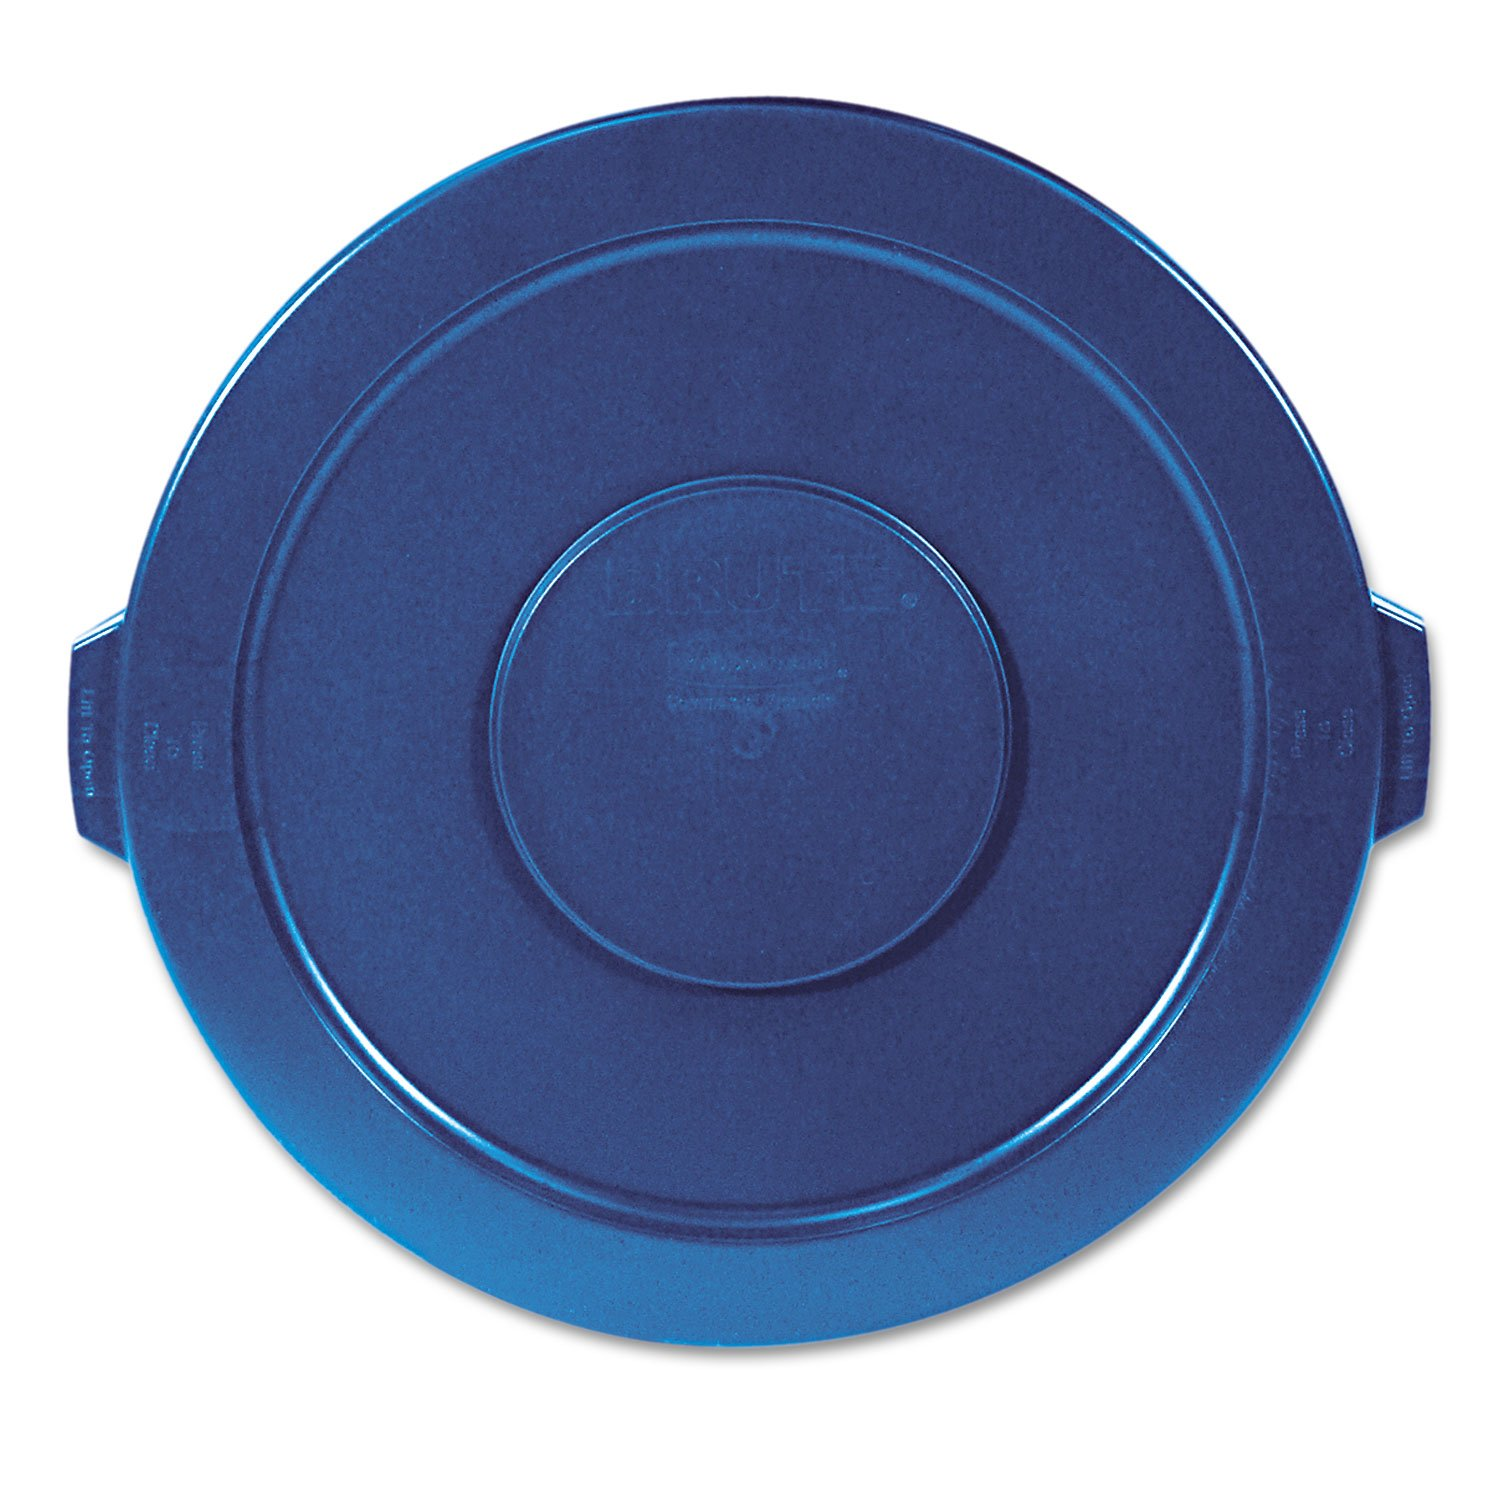 Rubbermaid 263100BE Brute Lid Only for 32 Gal Container, Blue